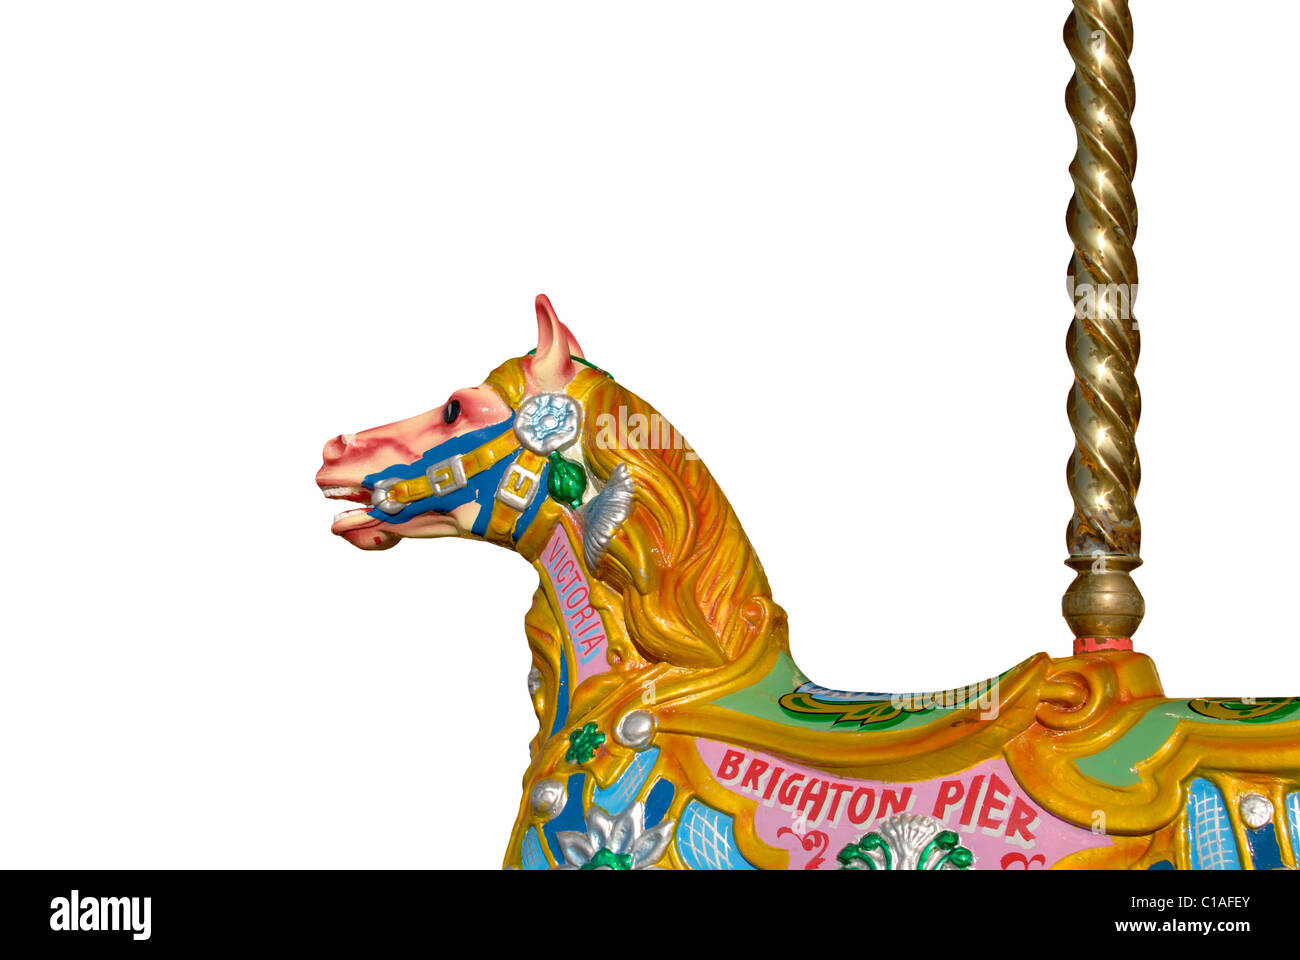 Brightly coloured fairground horse on traditional roundabout. Brighton Pier. East Sussex. England. Cut out on white Stock Photo